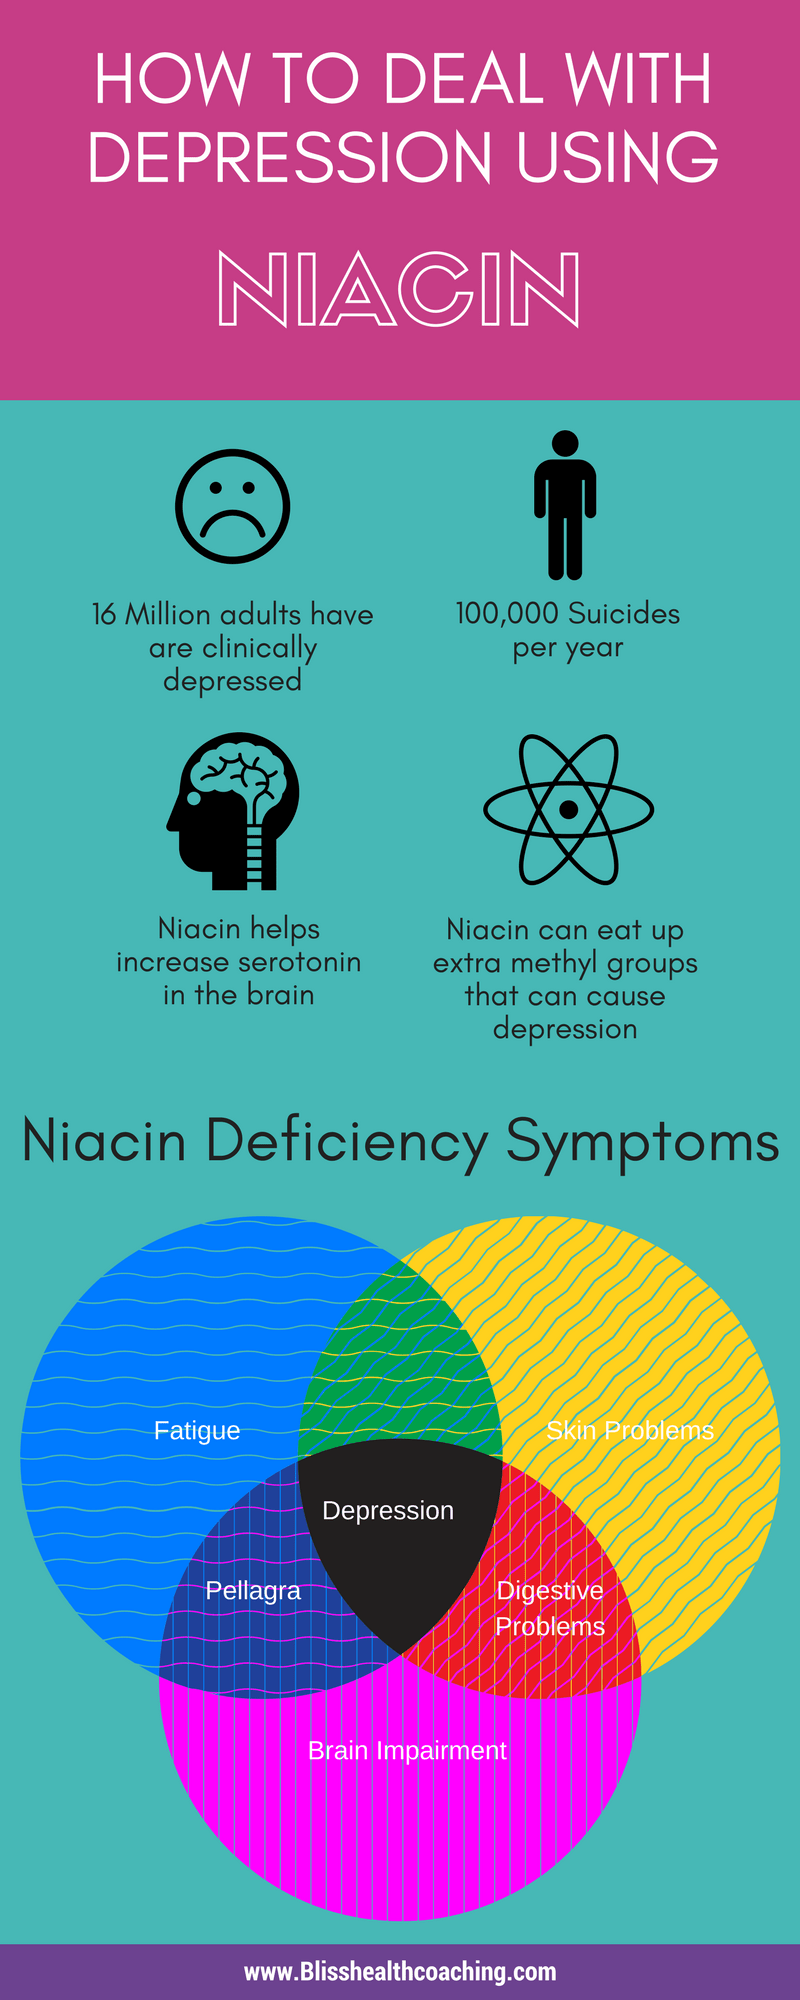 Niacin for Depression and Anxiety - Bliss Health Coaching